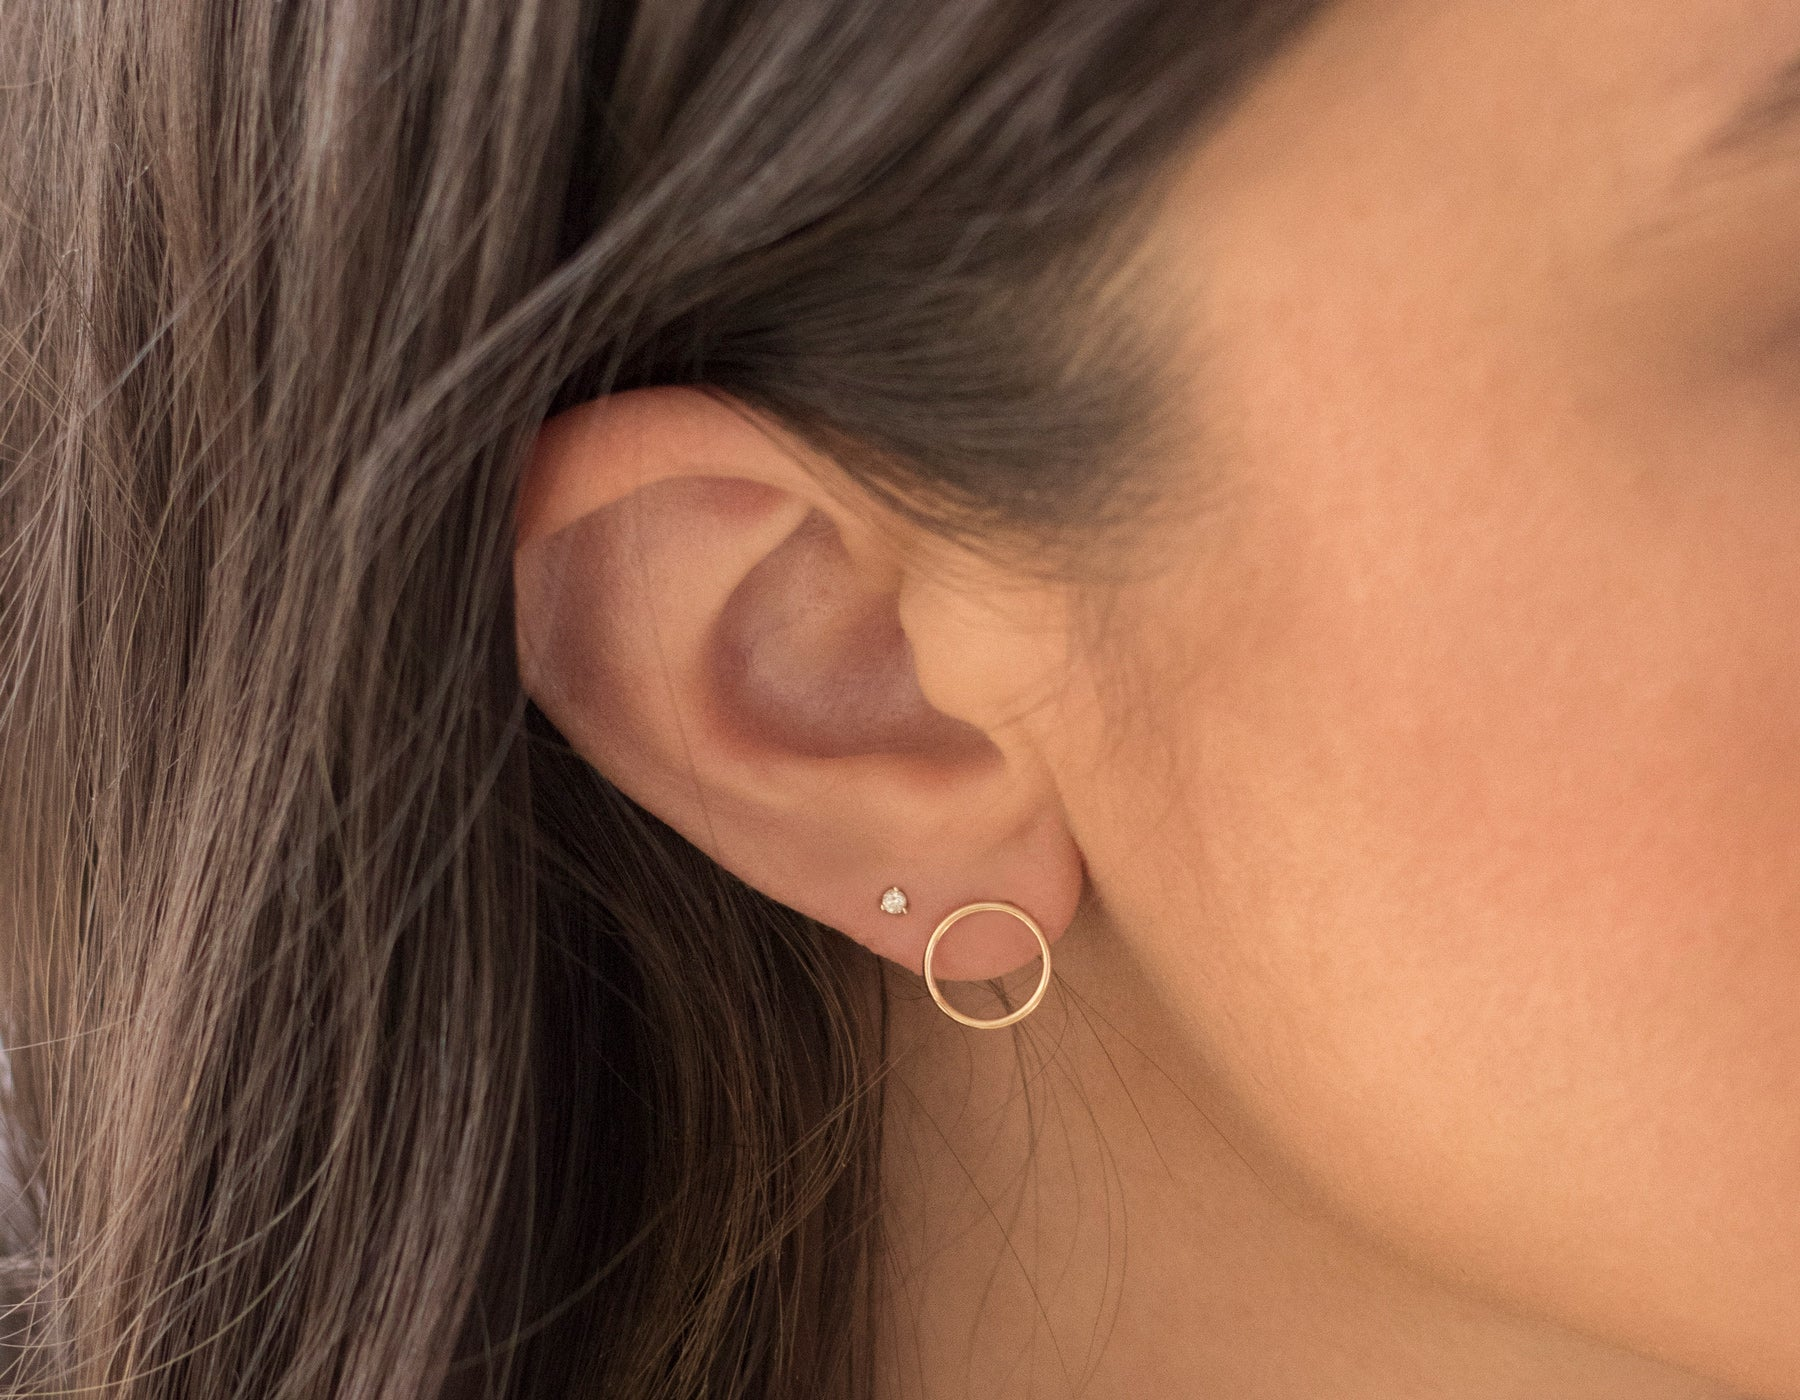 Edgy simple Circle Stud Earrings modelled in 14k yellow gold Vrai and Oro